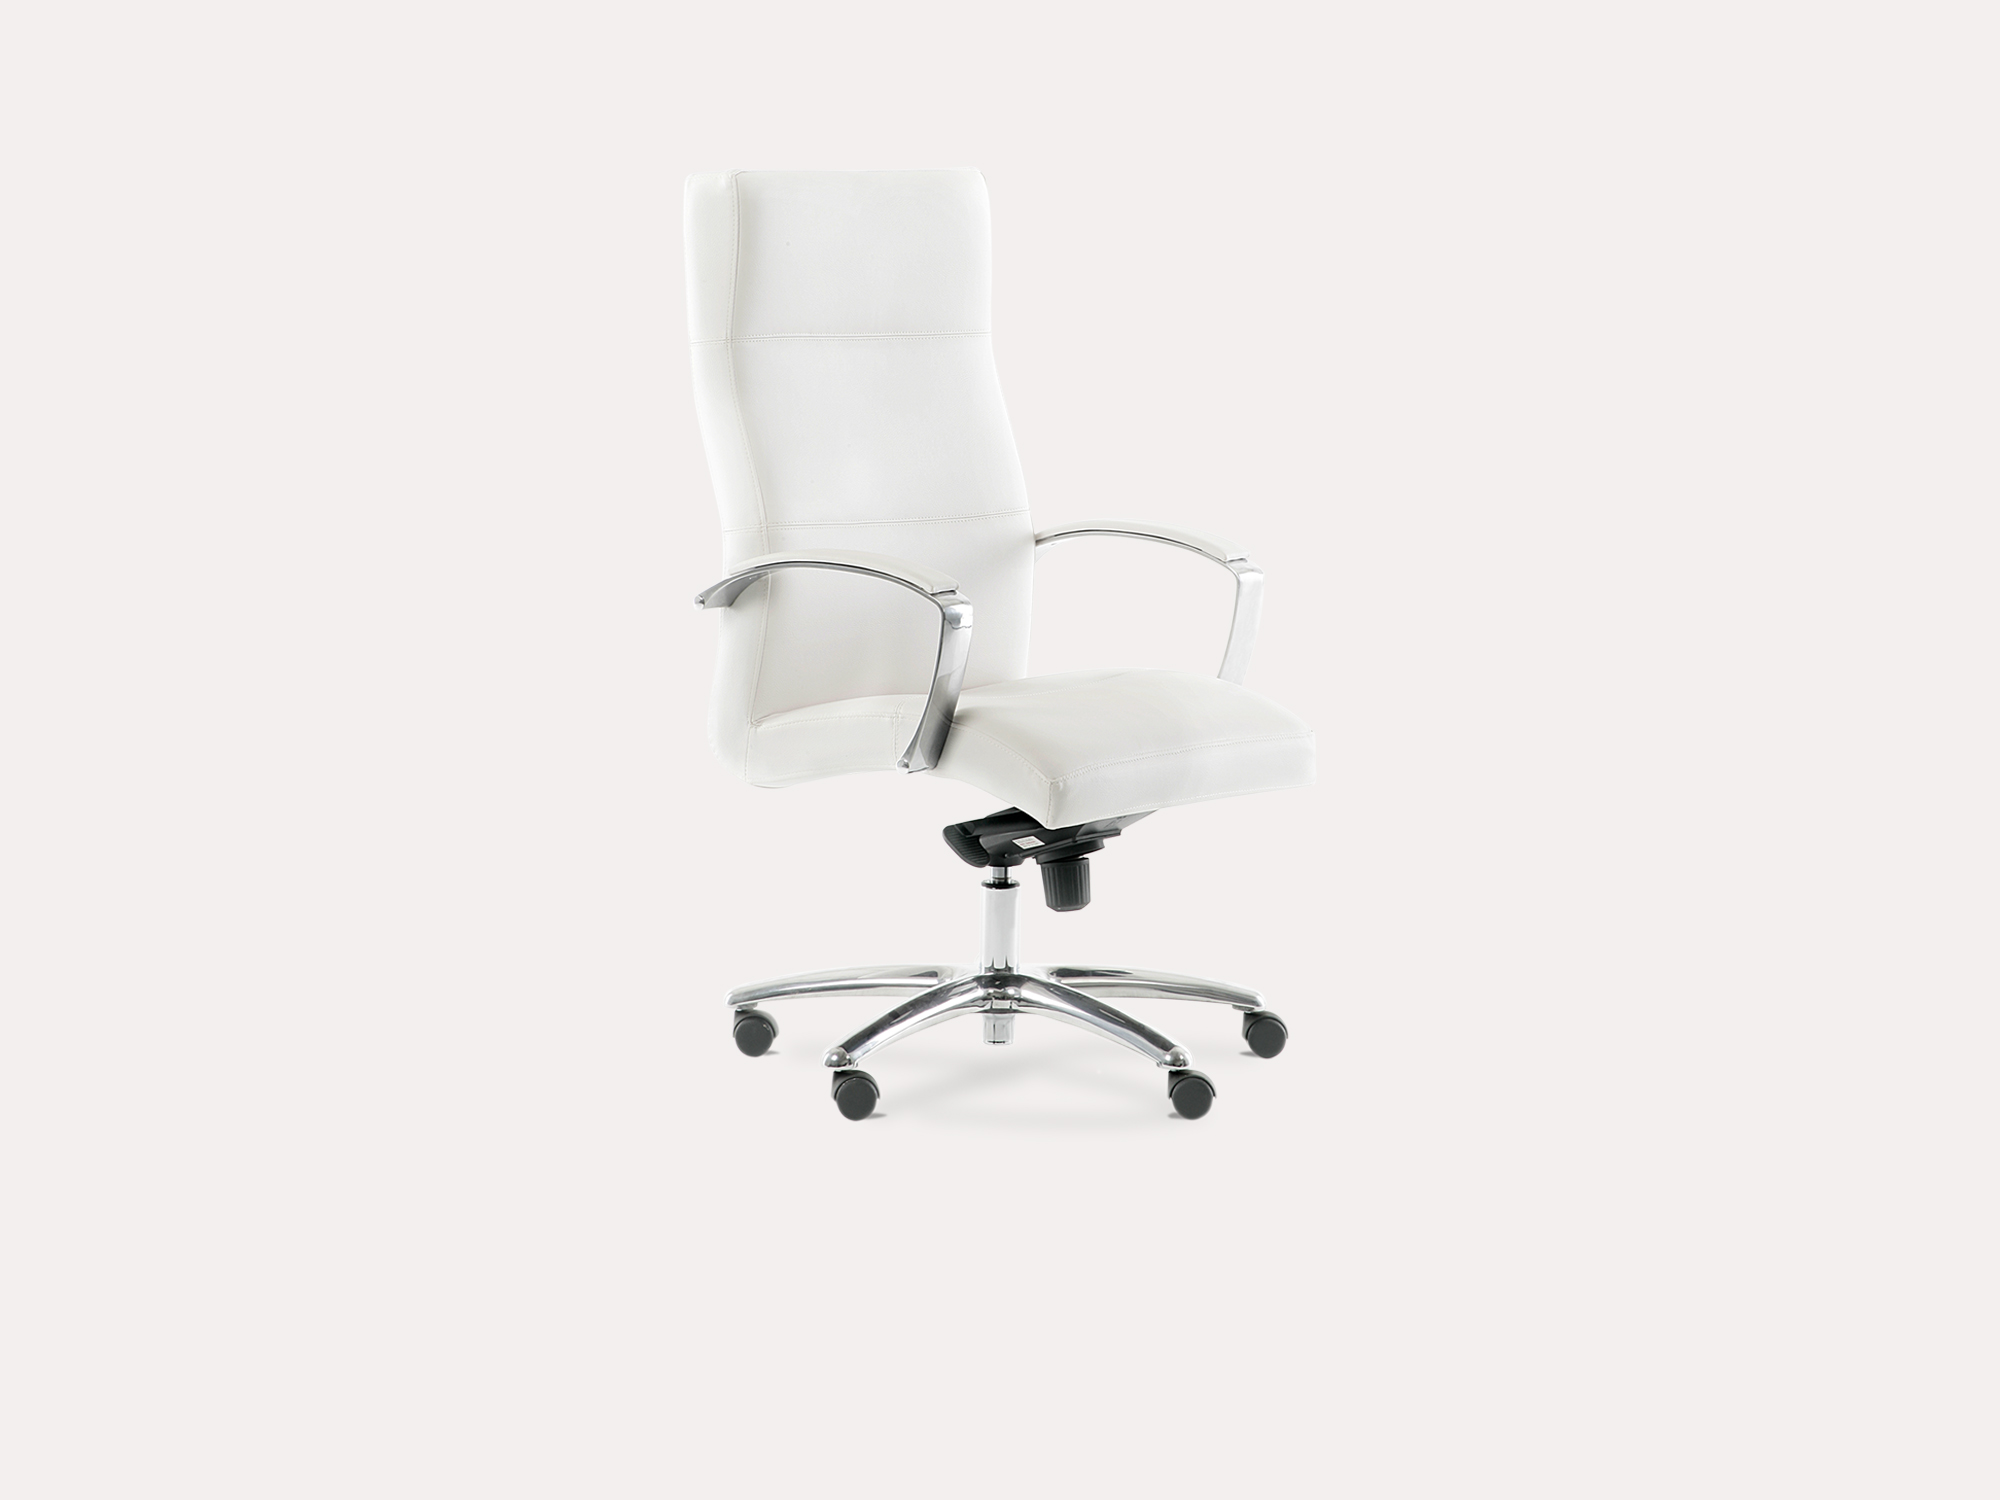 DEA_Ergonomic-office-chair